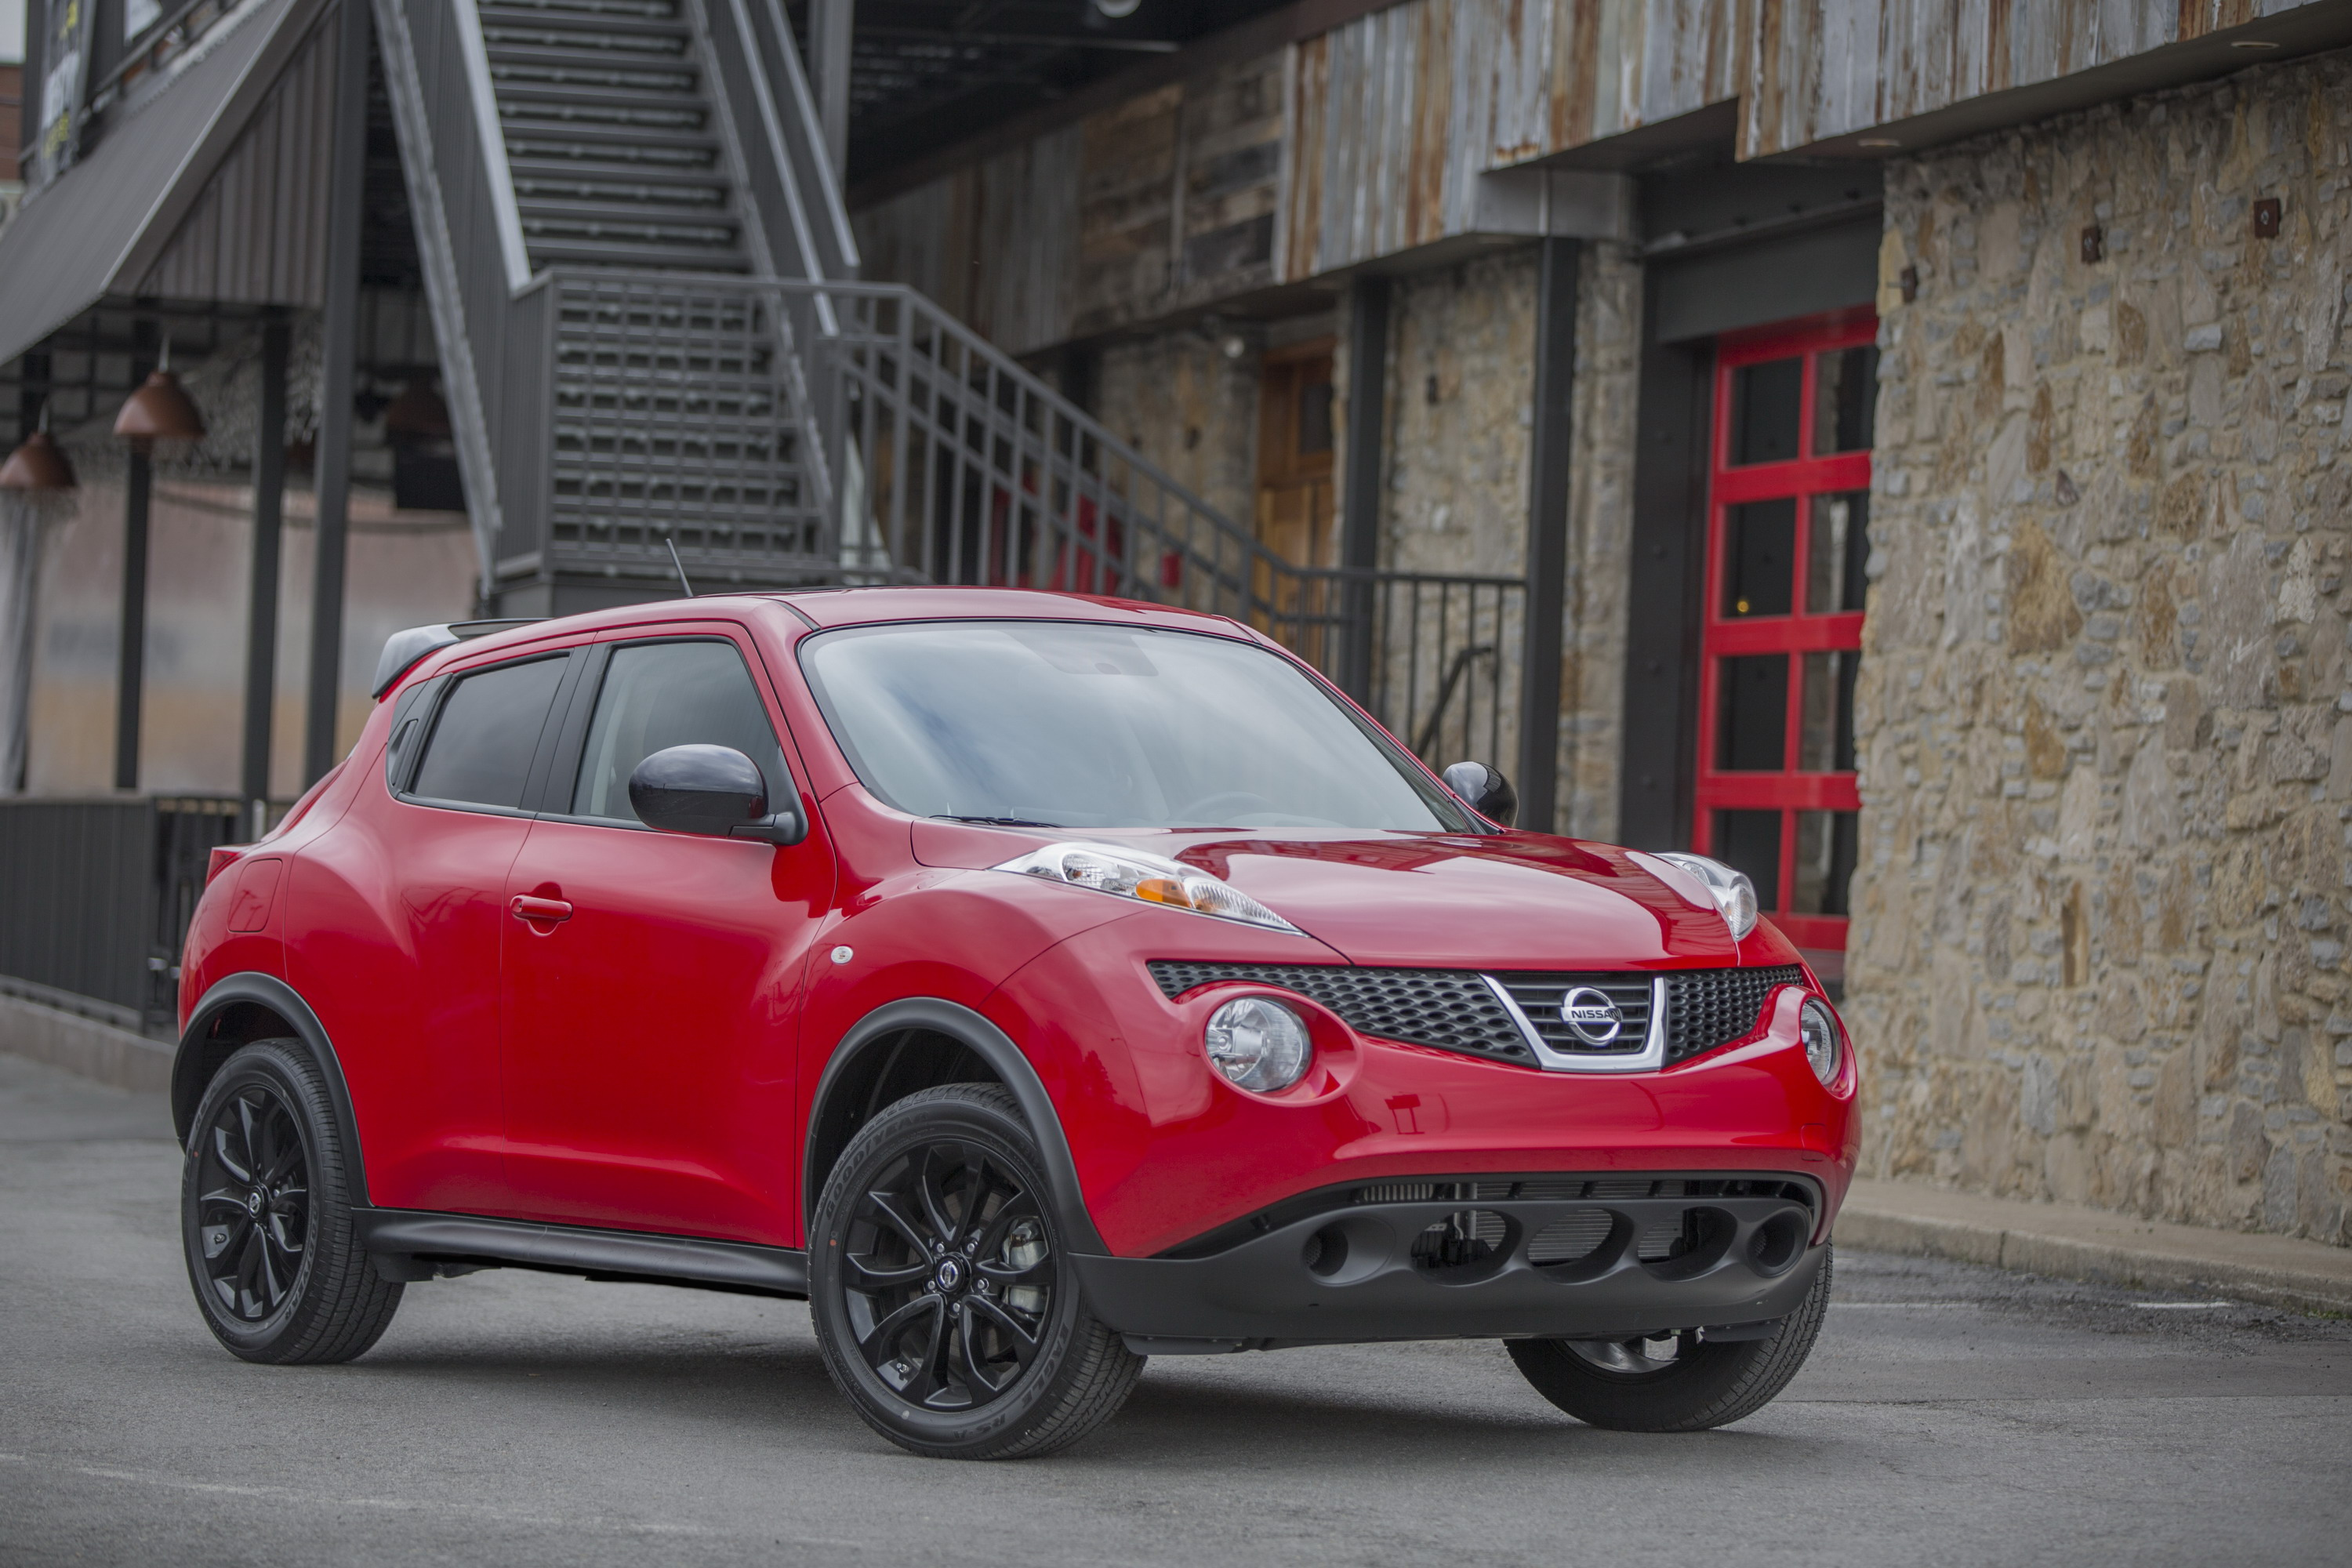 2014 Nissan Juke | Top Speed. »